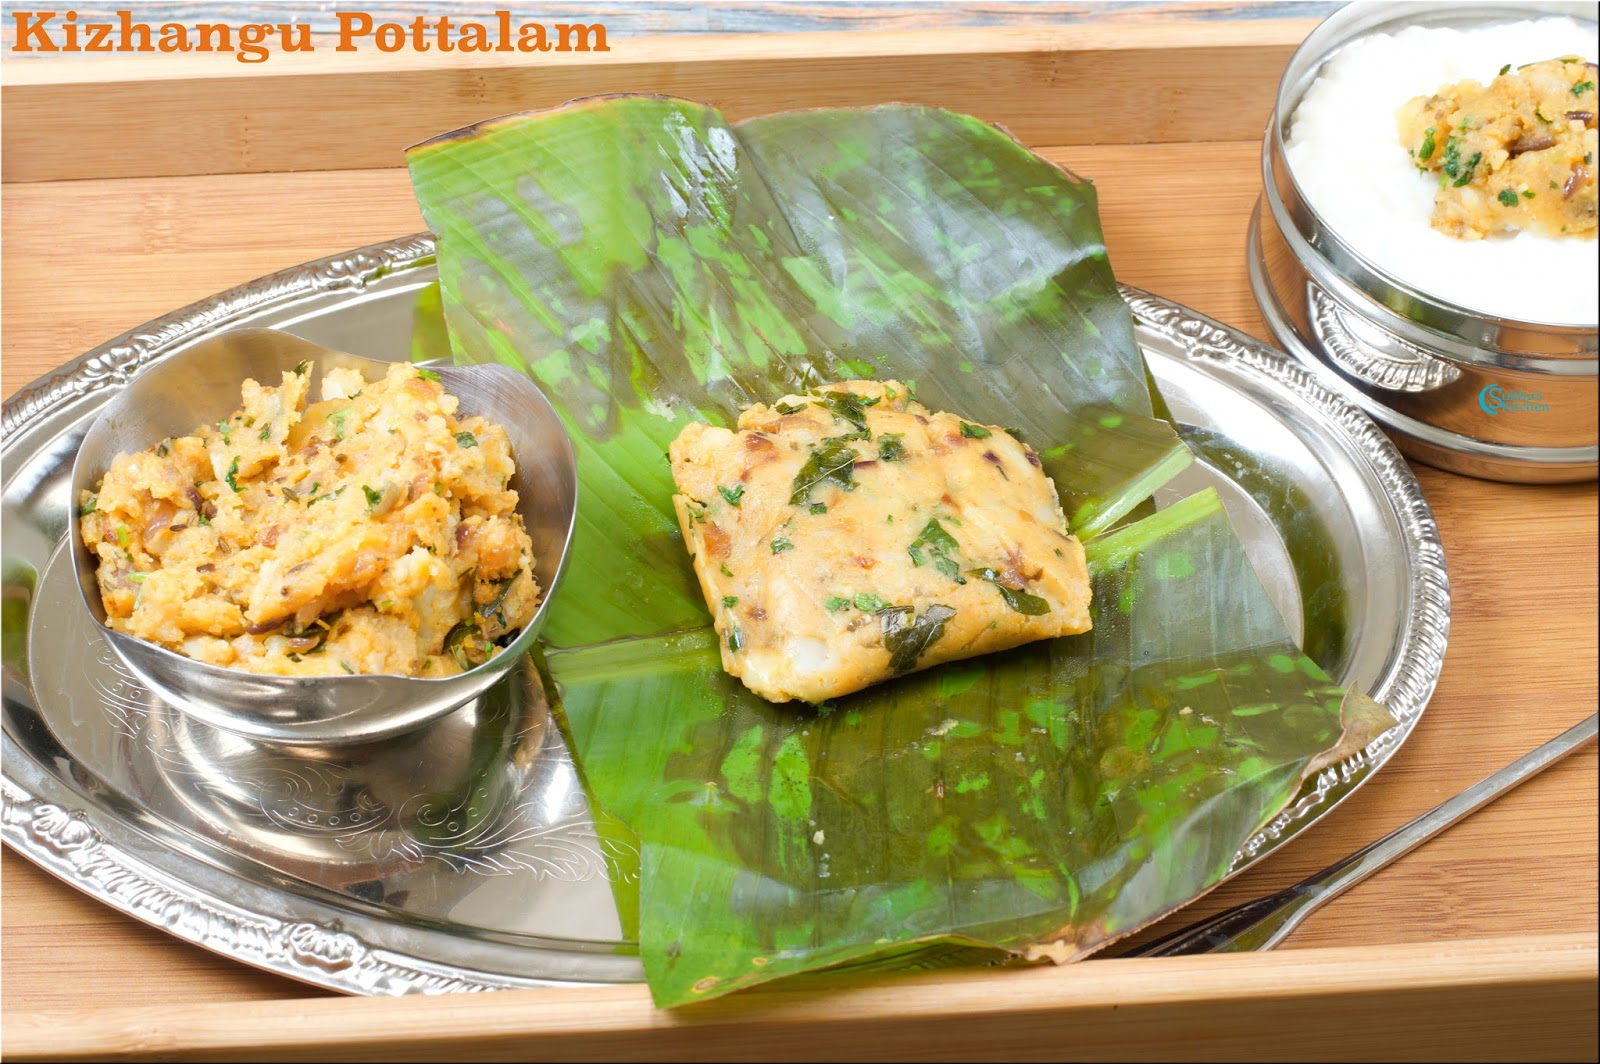 Madurai Kizhangu Pottalam | Spicy Potato Masala Parcels